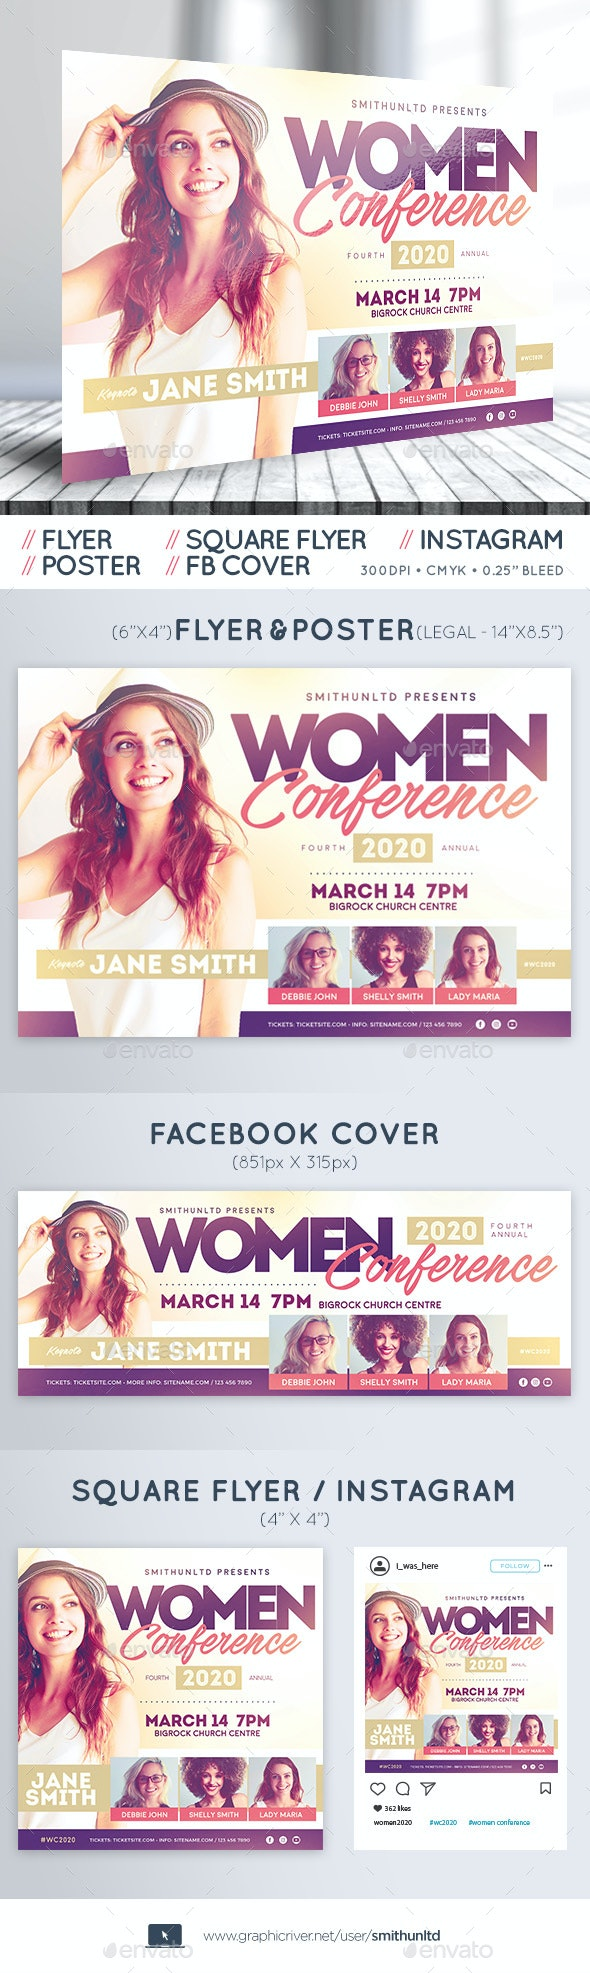 Women's Conference - Complete Set